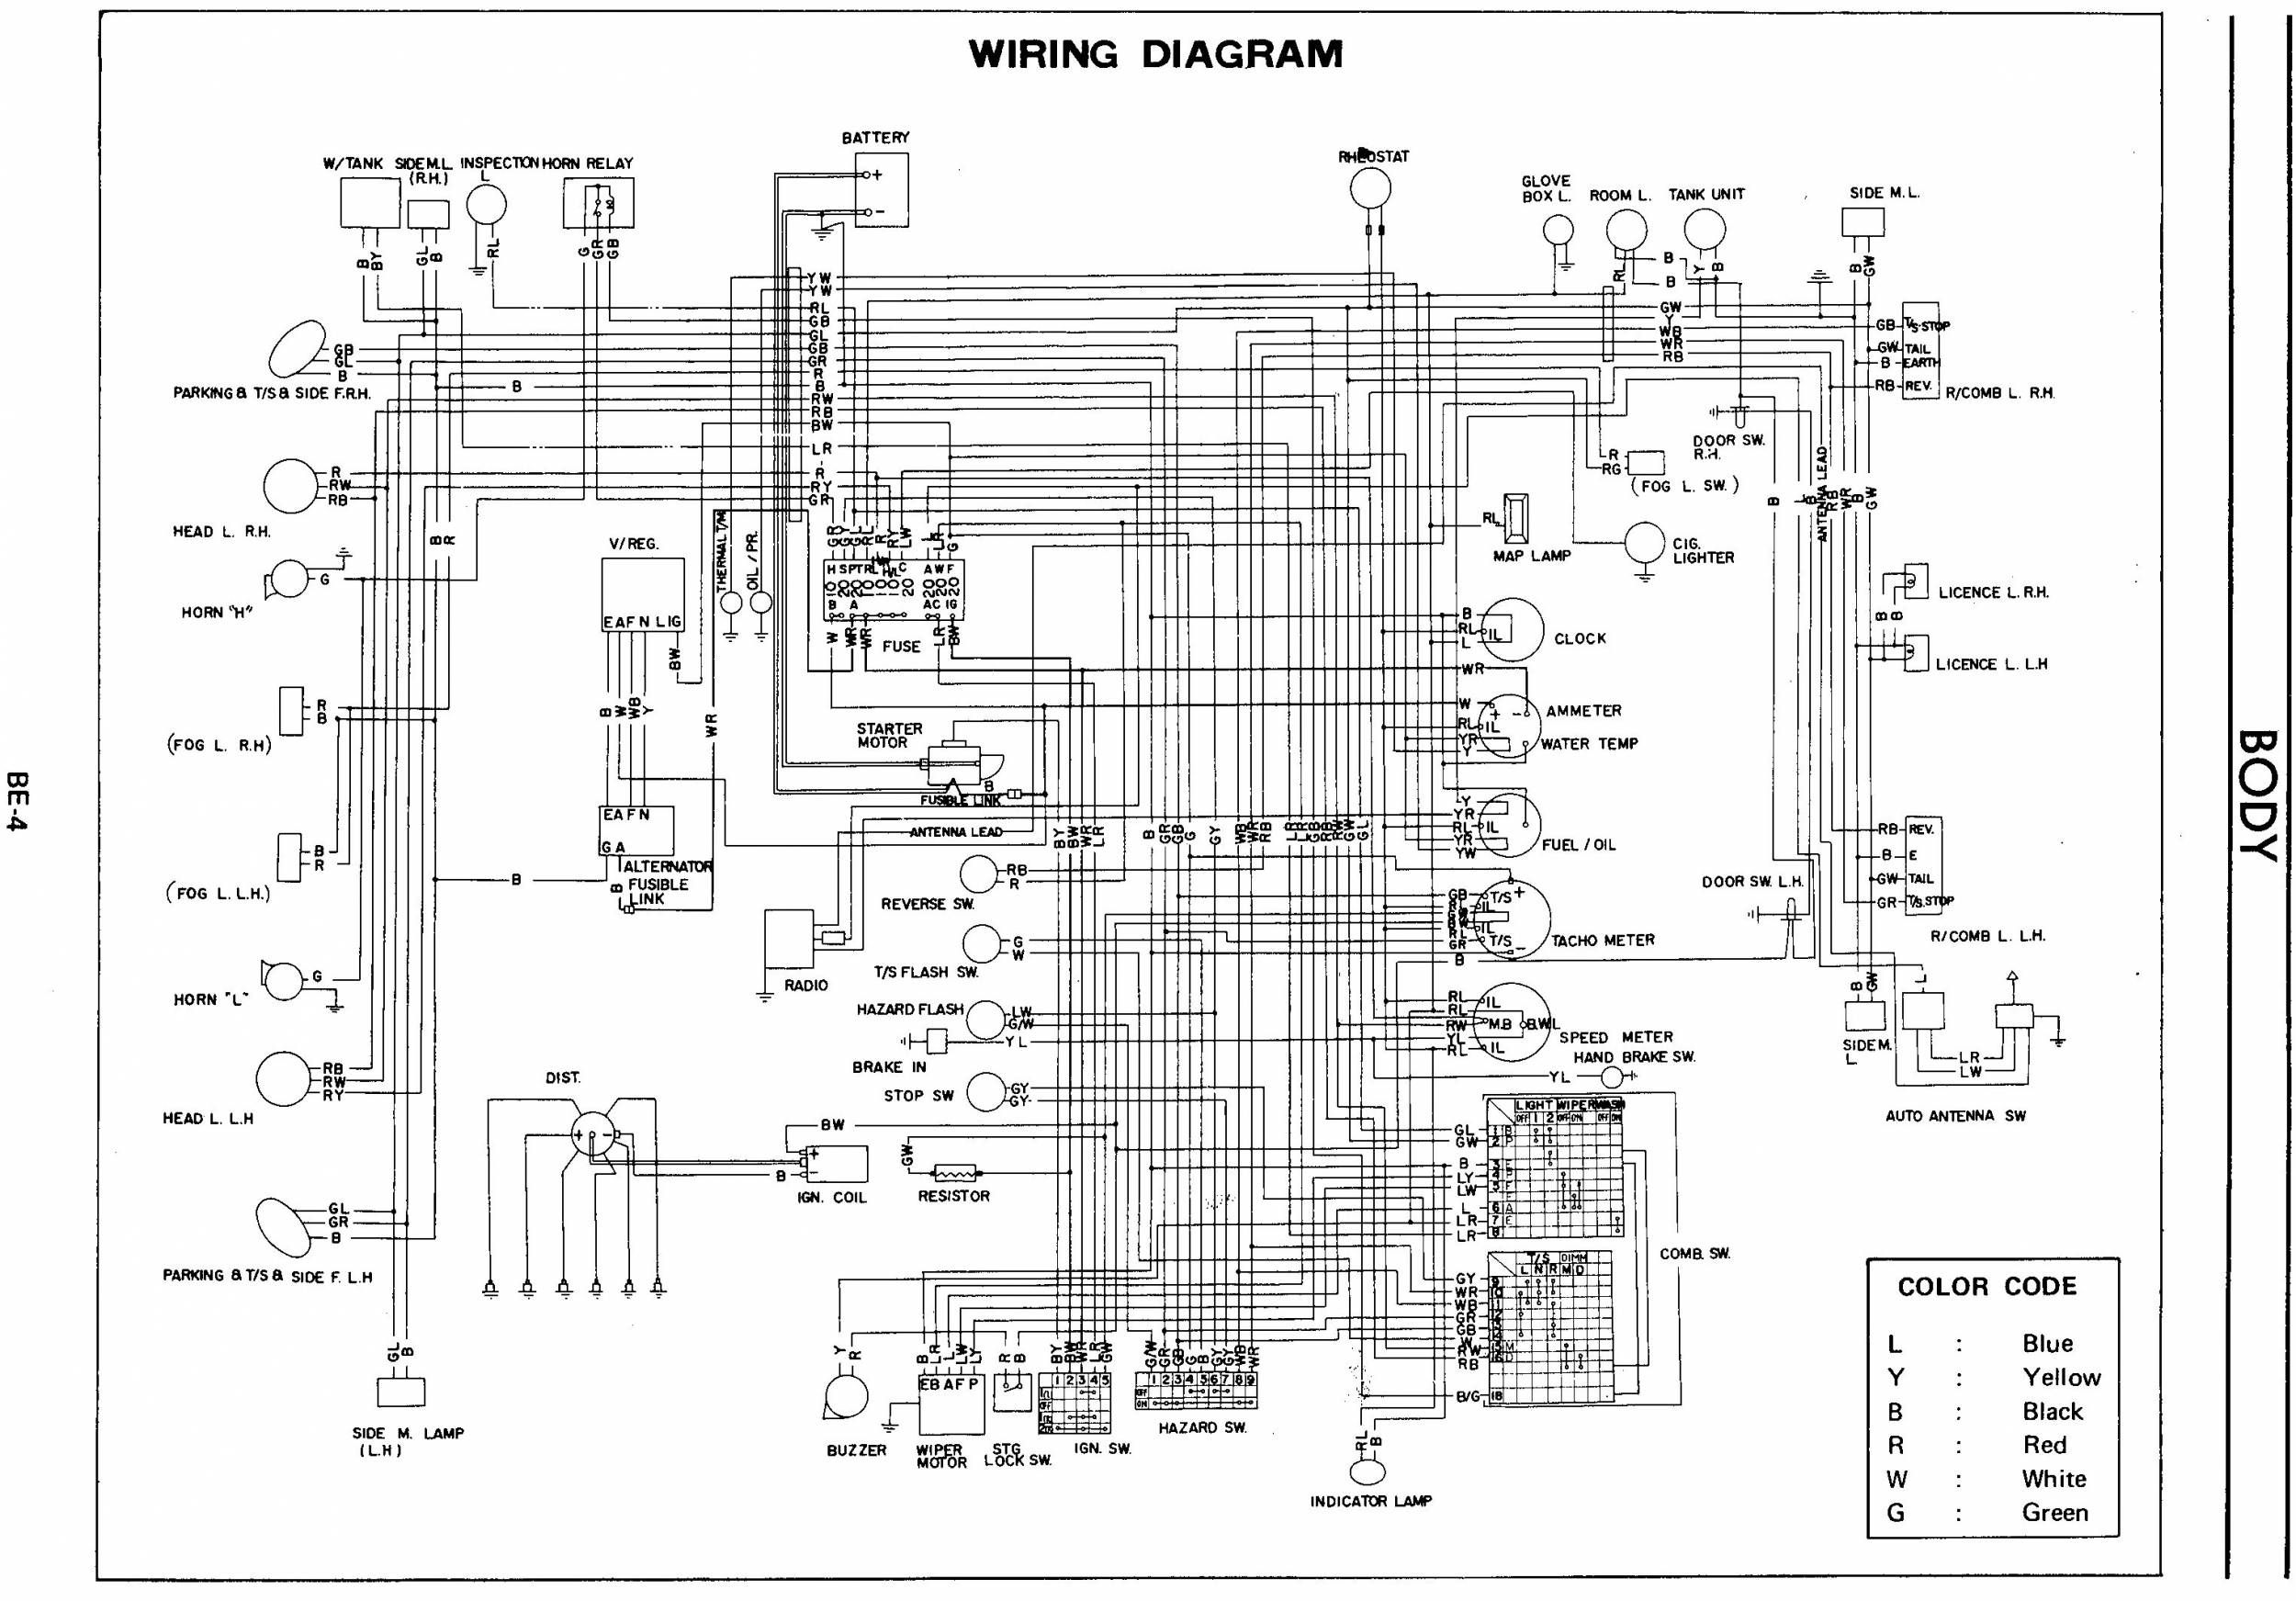 19 Stunning Free Auto Wiring Diagrams For You Https Bacamajalah Com 19 Stunning Free Auto Wiri Electrical Wiring Diagram Diagram Electrical Circuit Diagram